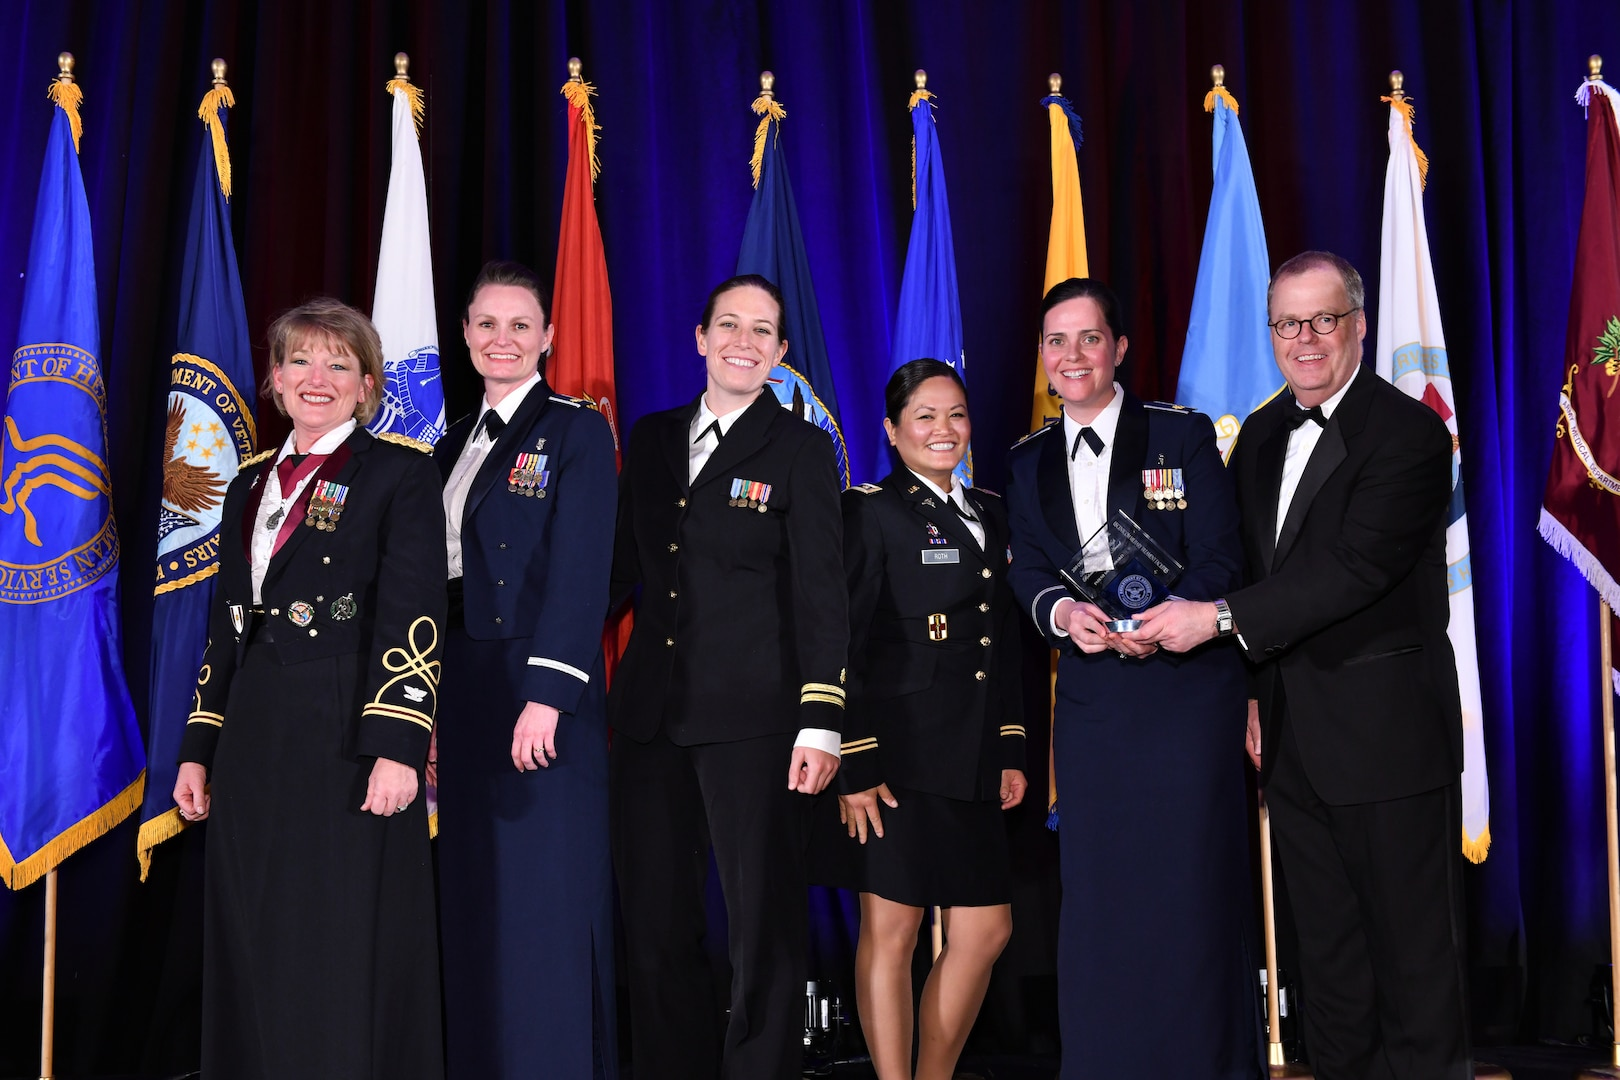 U.S. Central Command's (USCENTCOM) clinical operations team poses for a group photo during an awards ceremony at the annual meeting of AMSUS, the Society of Federal Health Professionals, Dec. 5 2019. From left to right; U.S. Army Col. Tamara Funari, USCENTCOM's Chief of Clinical Operations; U.S. Air Force Maj. Steffanie Solberg, U.S. Air Force Central Command's Chief of Clinical Operations; U.S. Navy Lt. Ashley Hanhurst, Navy Nurse Corps, Walter Reed National Military Medical Center; U.S. Army Cpt. Amanda Roth, microbiologist at US Army Medical Research Directorate – Africa; U.S. Air Force Maj Alice Barsoumian, infectious disease physician at San Antonio Military Medical Center; Thomas McCaffery, Assistant Secretary of Defense for Health Affairs. (Courtesy photo provided by Eddie Arrossi/ AMSUS)